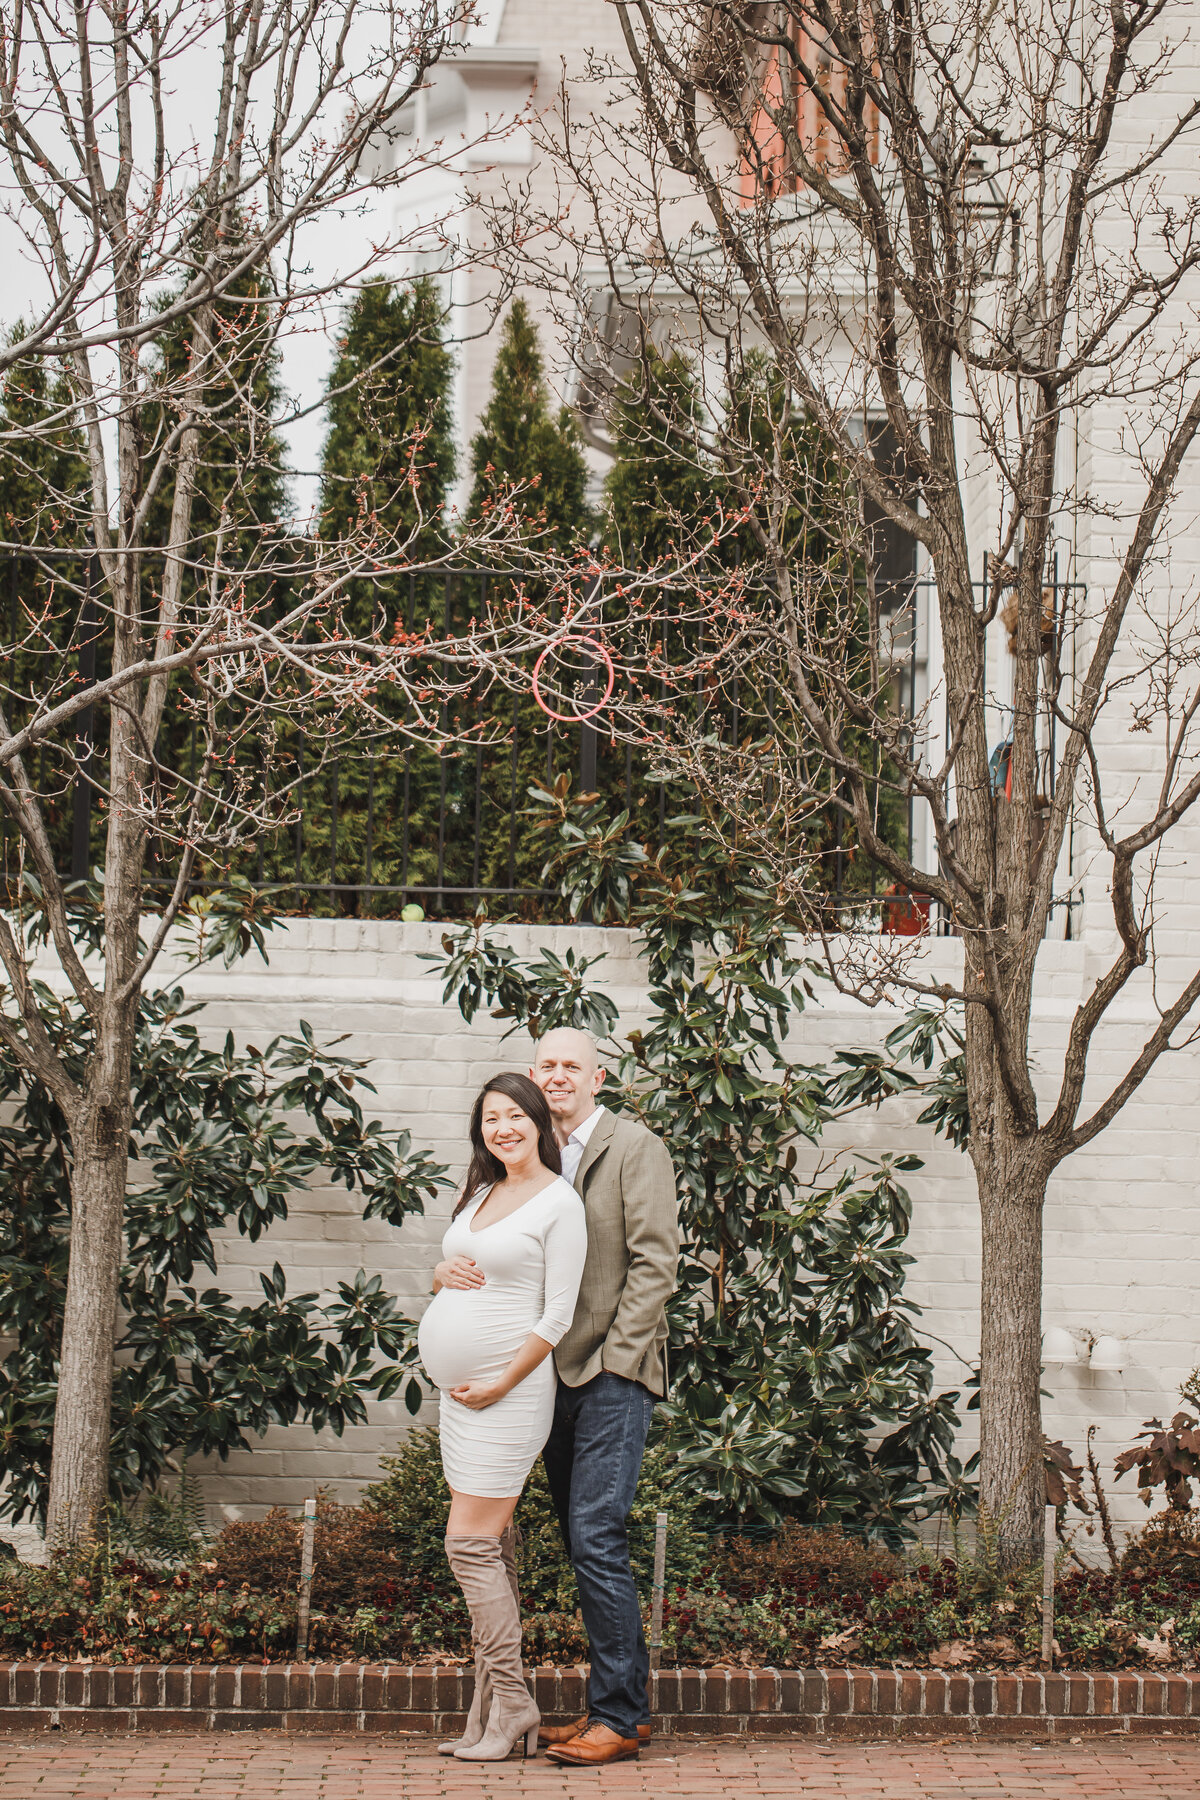 Sheridan - Virginia Maternity Photographer - Photography by Amy Nicole-34-2